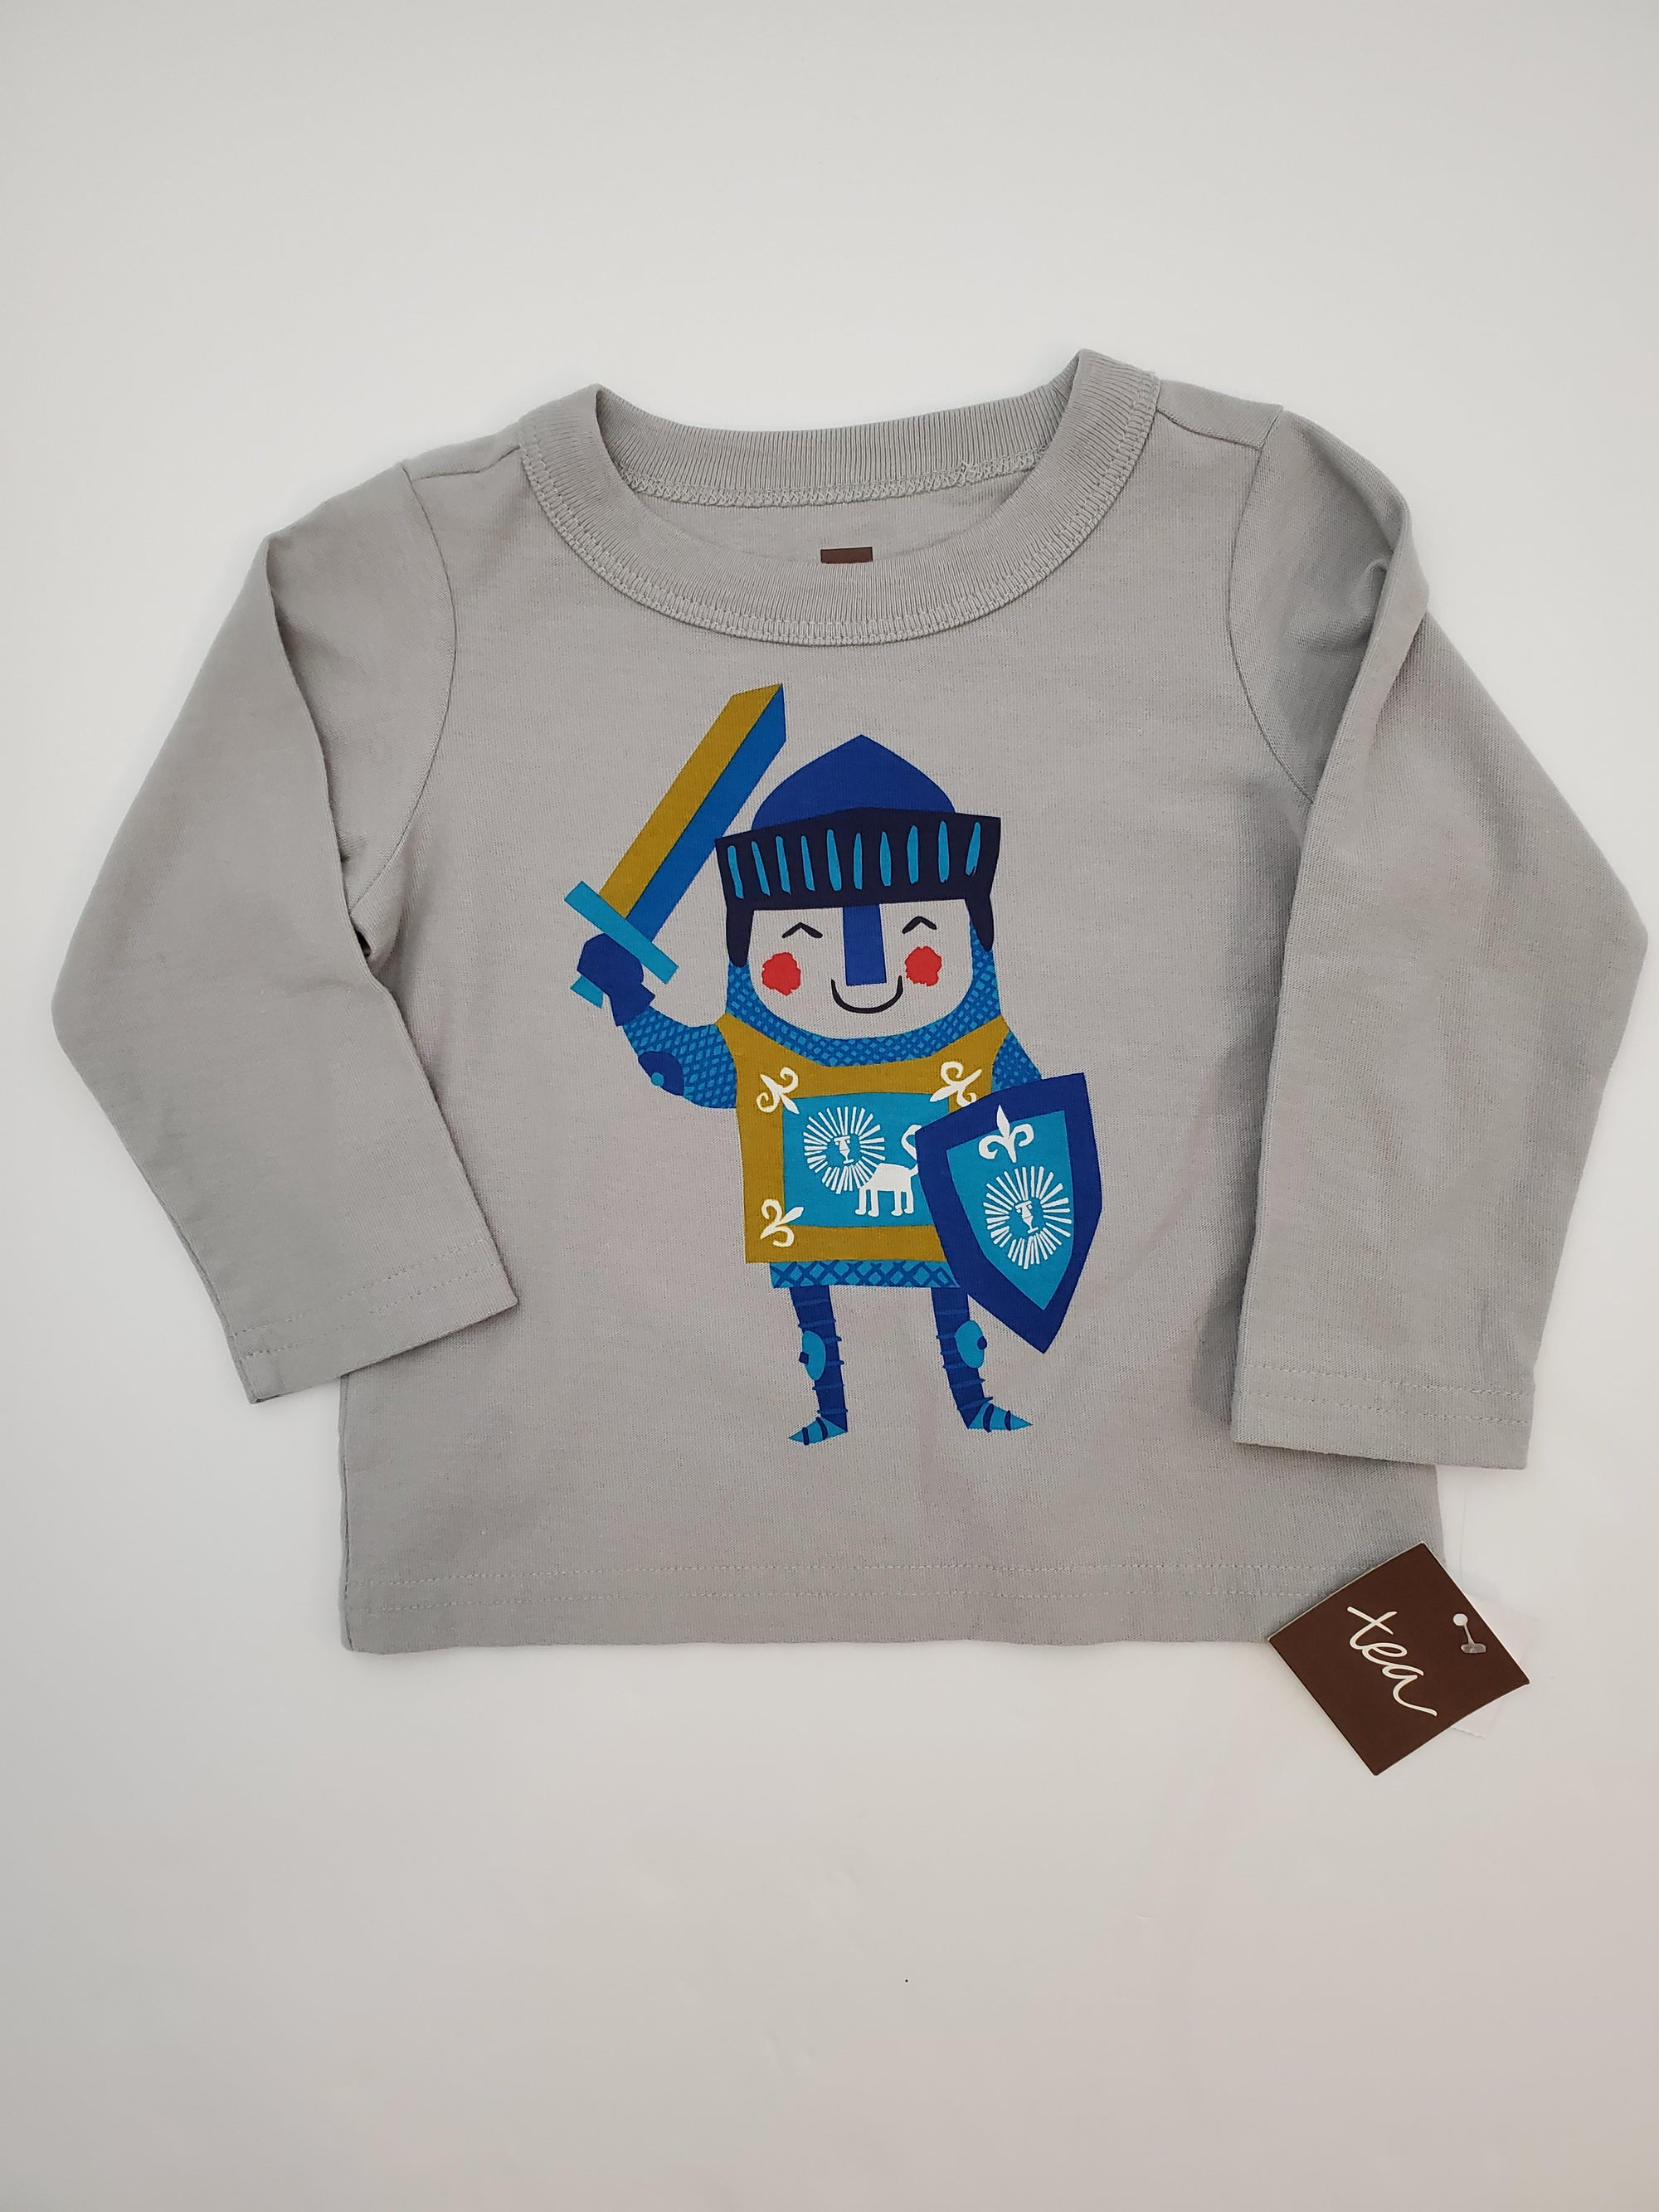 Tea Collection 6-9 m Little Knight Graphic Tee Shirt